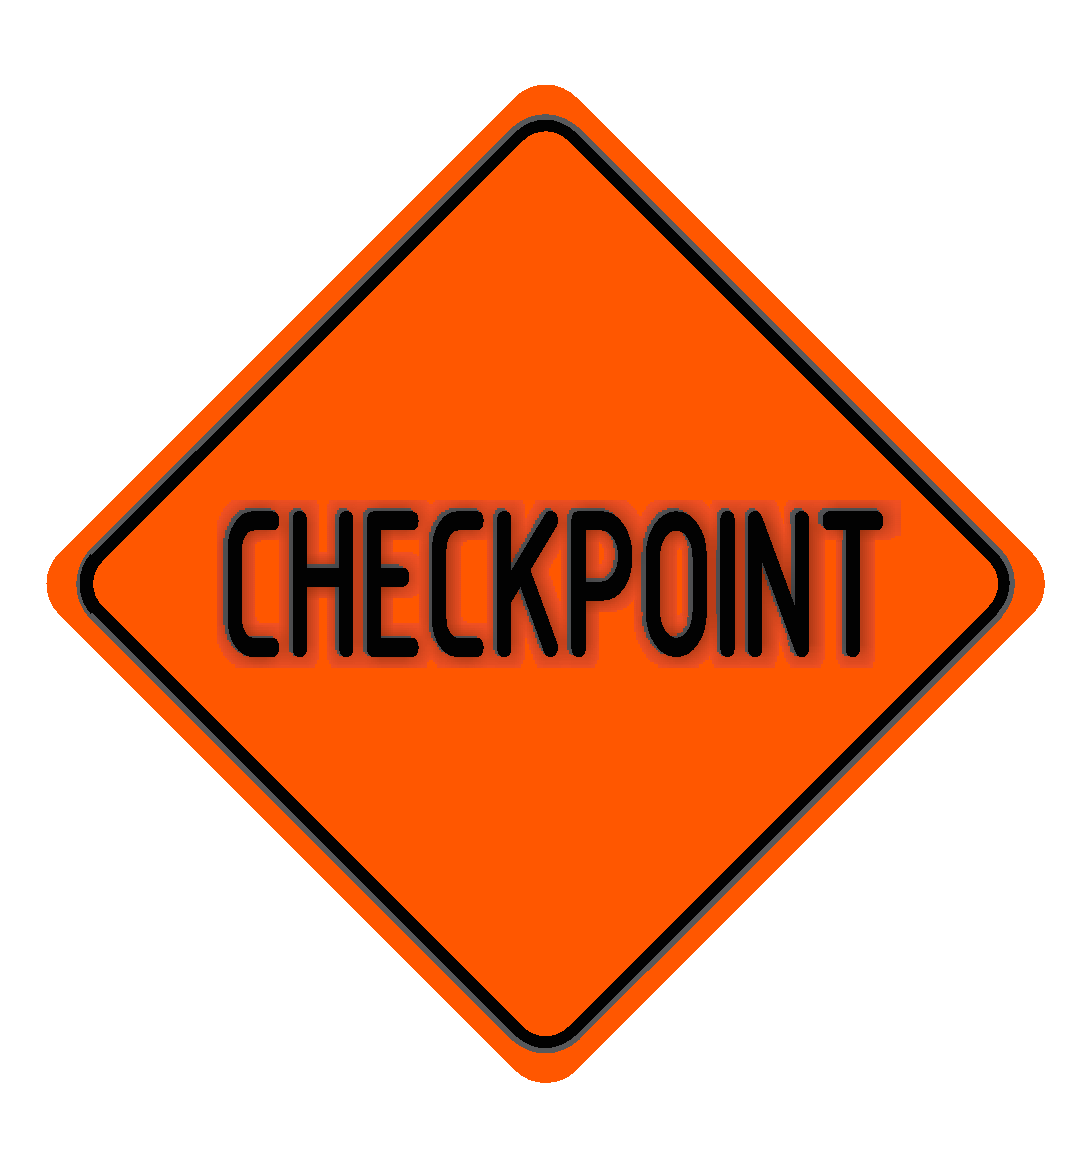 checkpoint city of hubbard